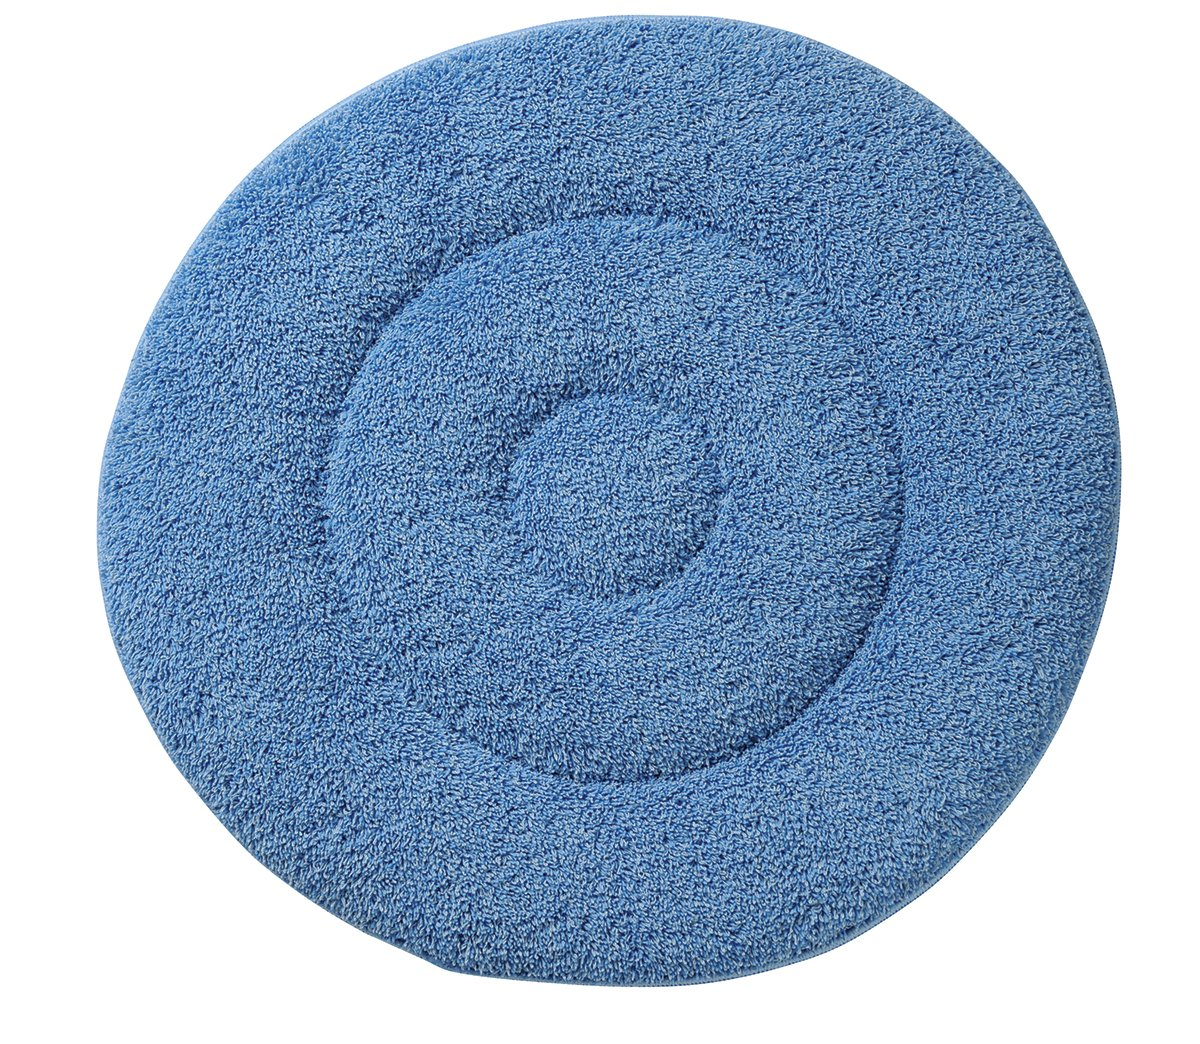 Glit/Microtron 404779 Microfiber Carpet Cleaning Bonnet Pad, 19'', Blue (Pack of 2) by Glit / Microtron